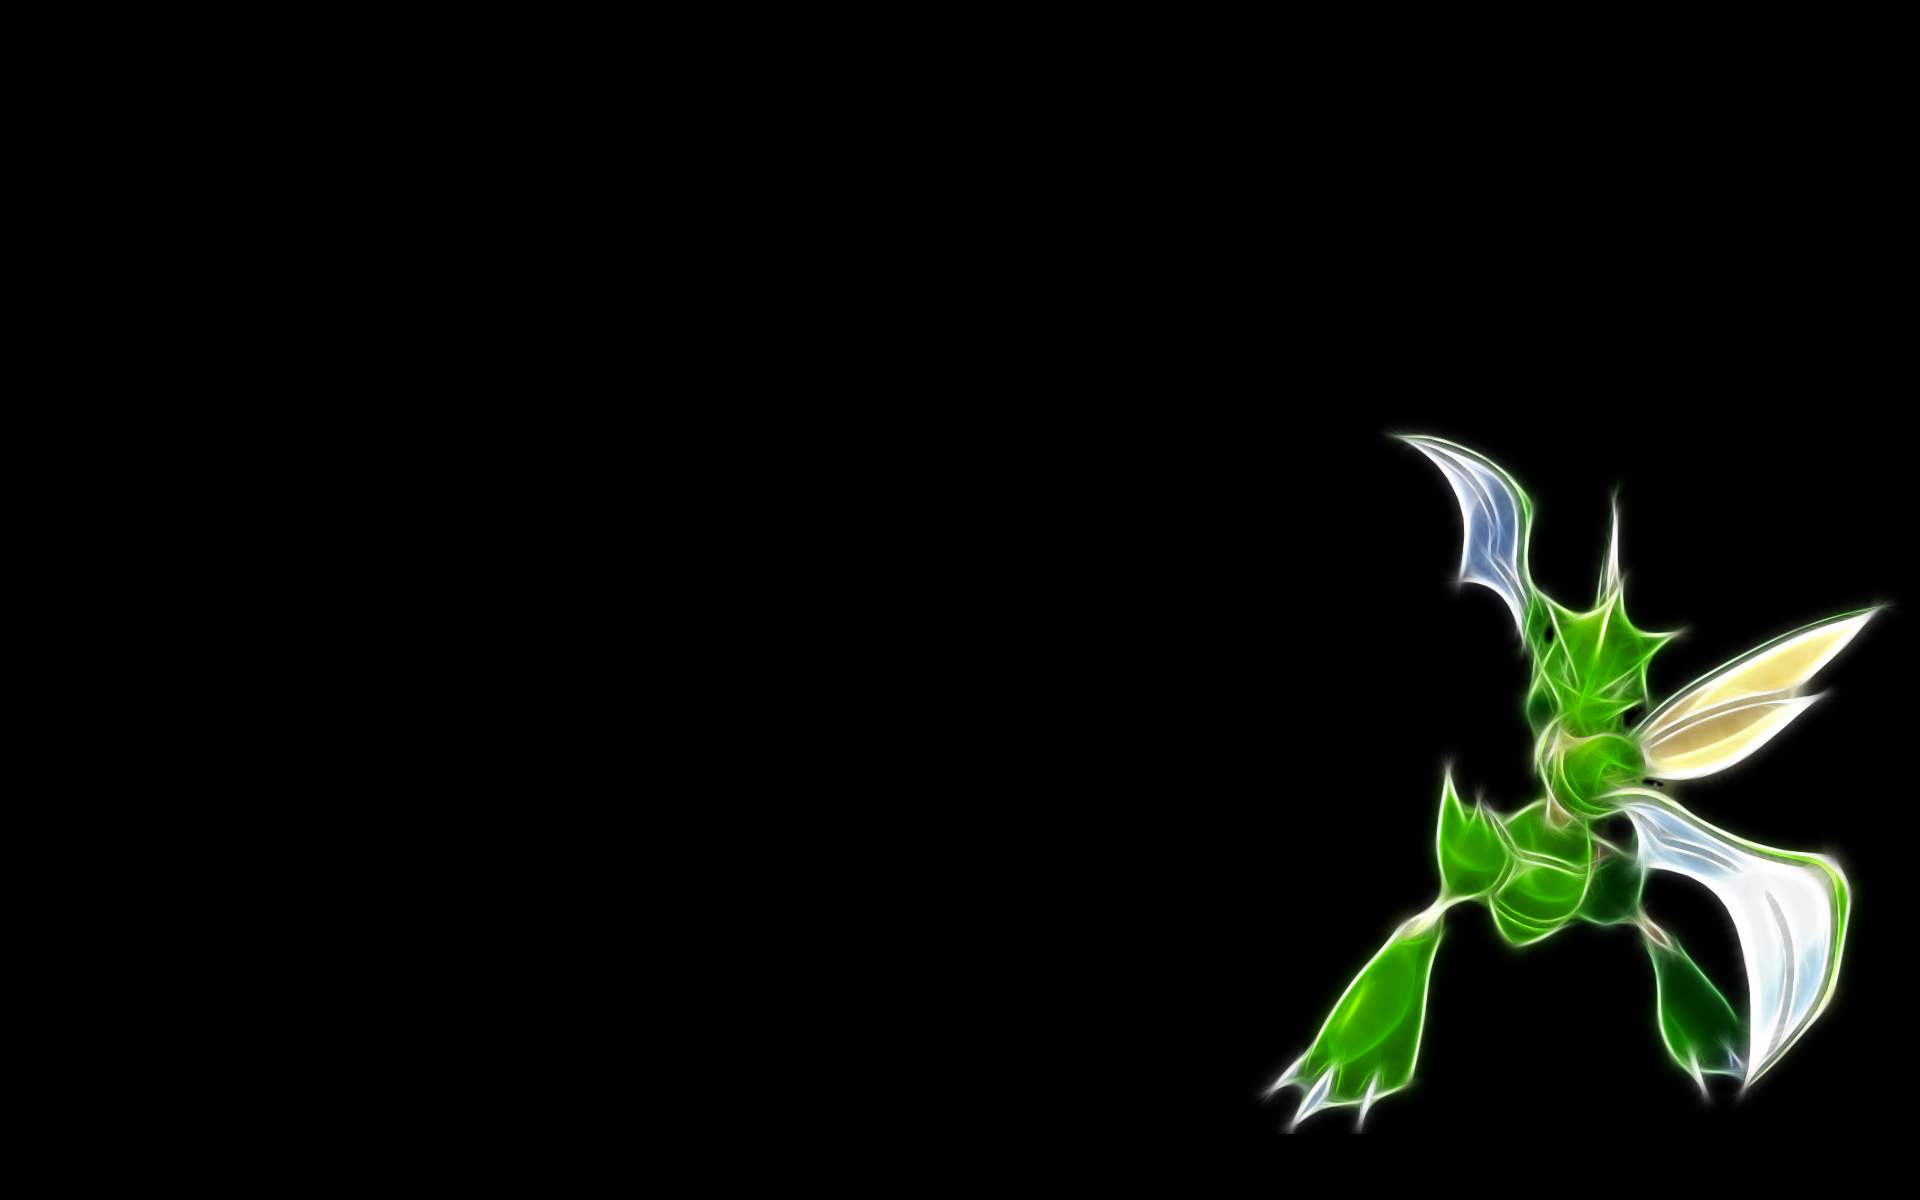 emerald rayquaza wallpapers - photo #44